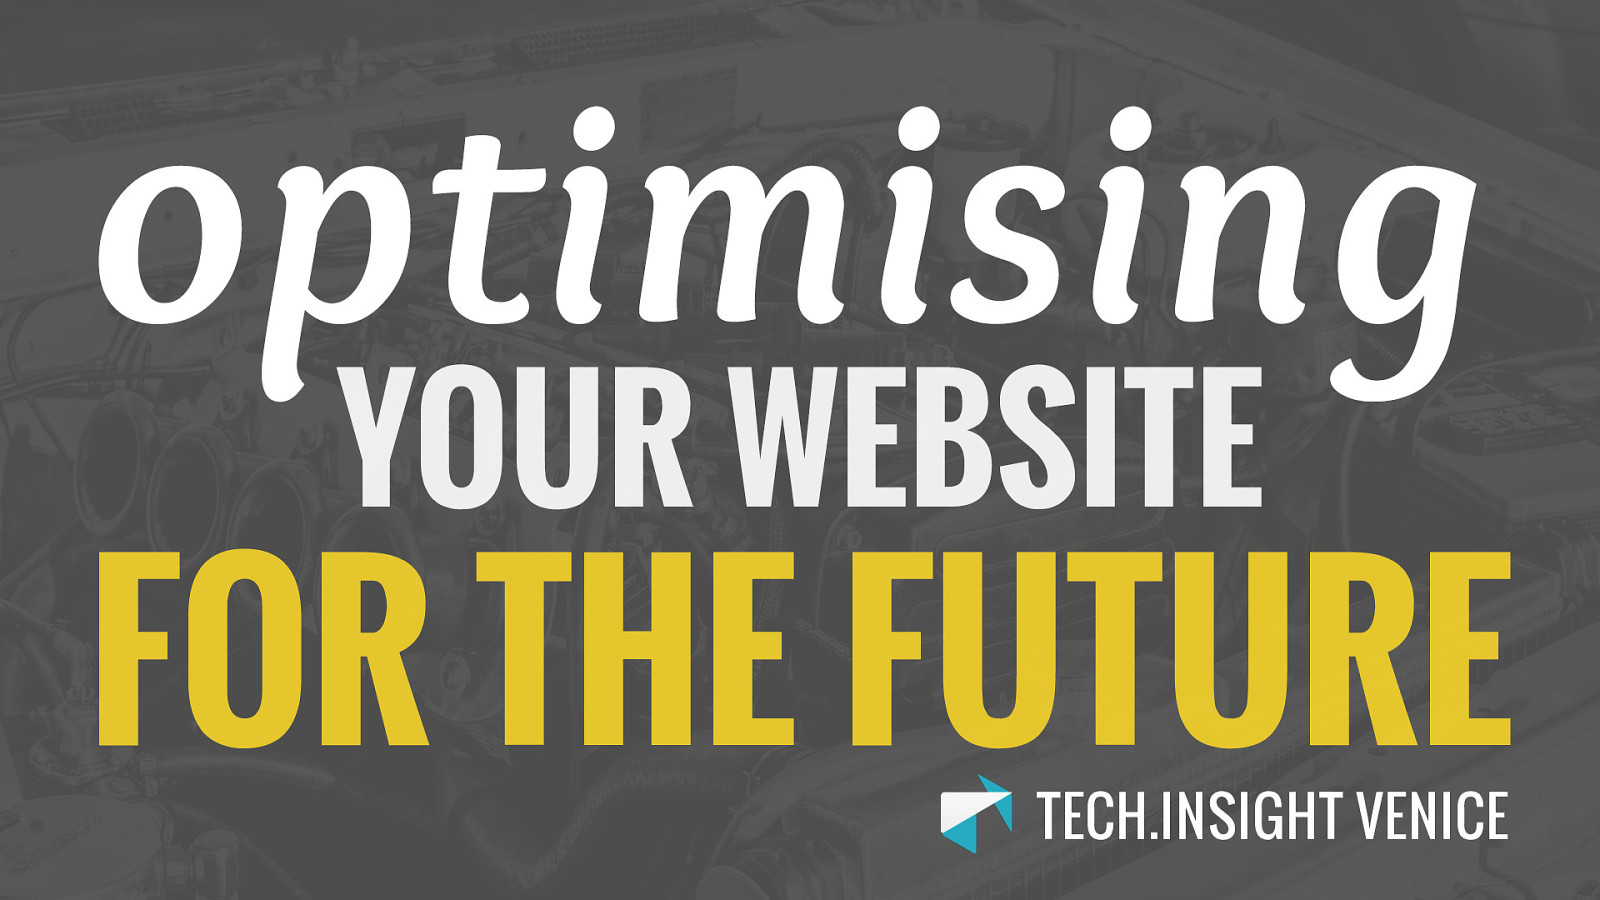 Optimising your website for the future